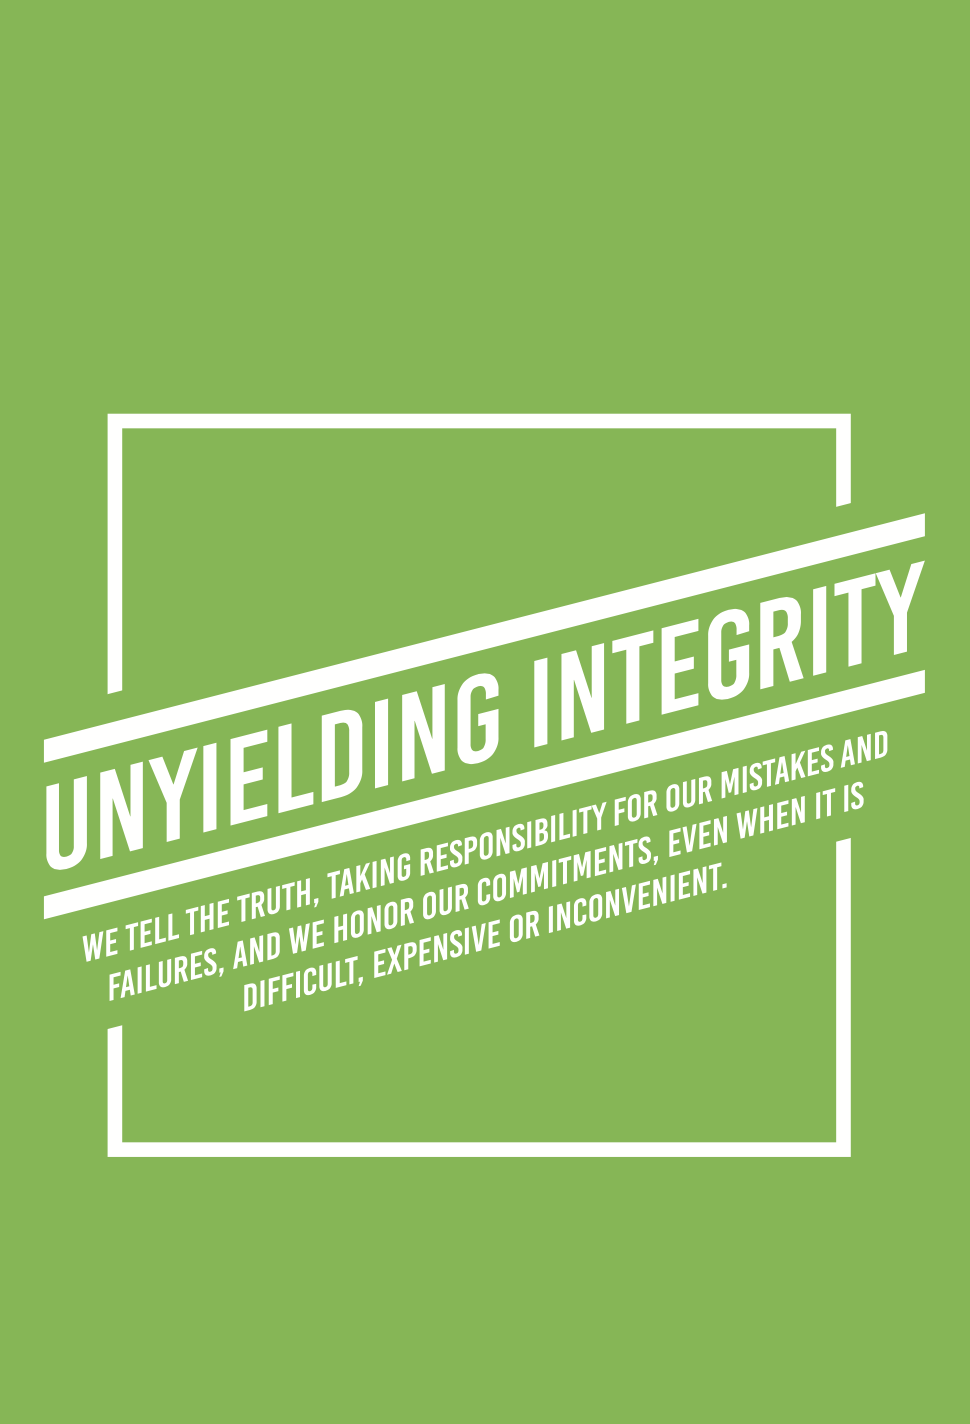 Harvest Wealth Group Core Values- Unyielding Integrity